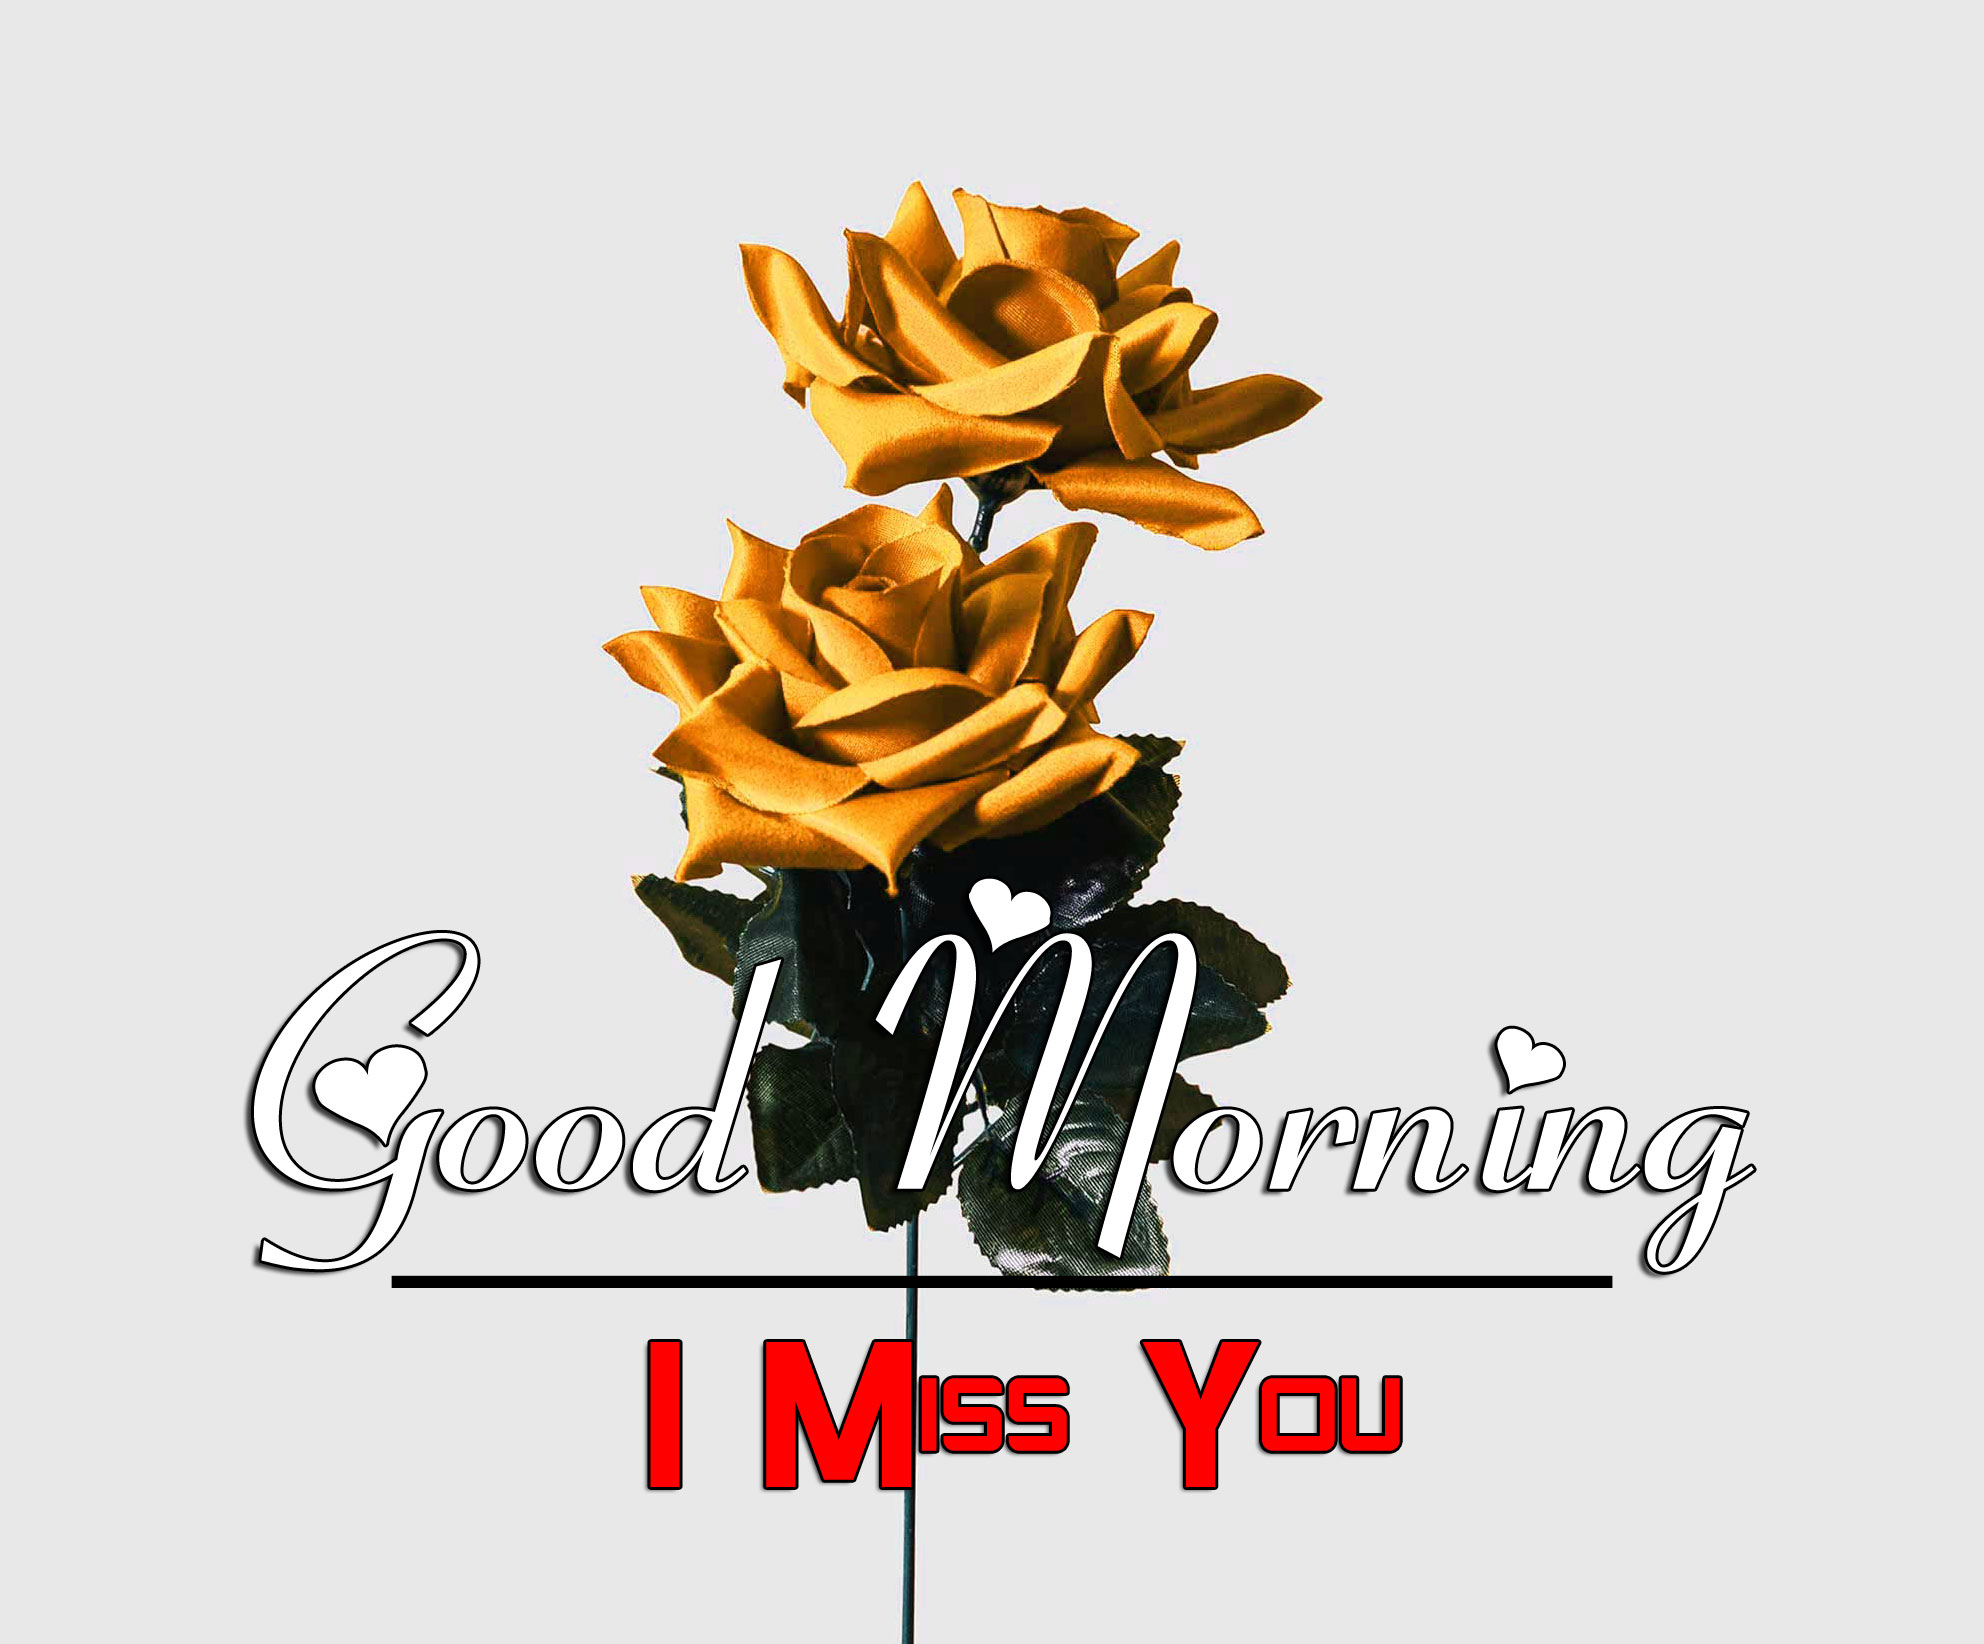 Best HD Good Morning Wishes Images With I Miss you